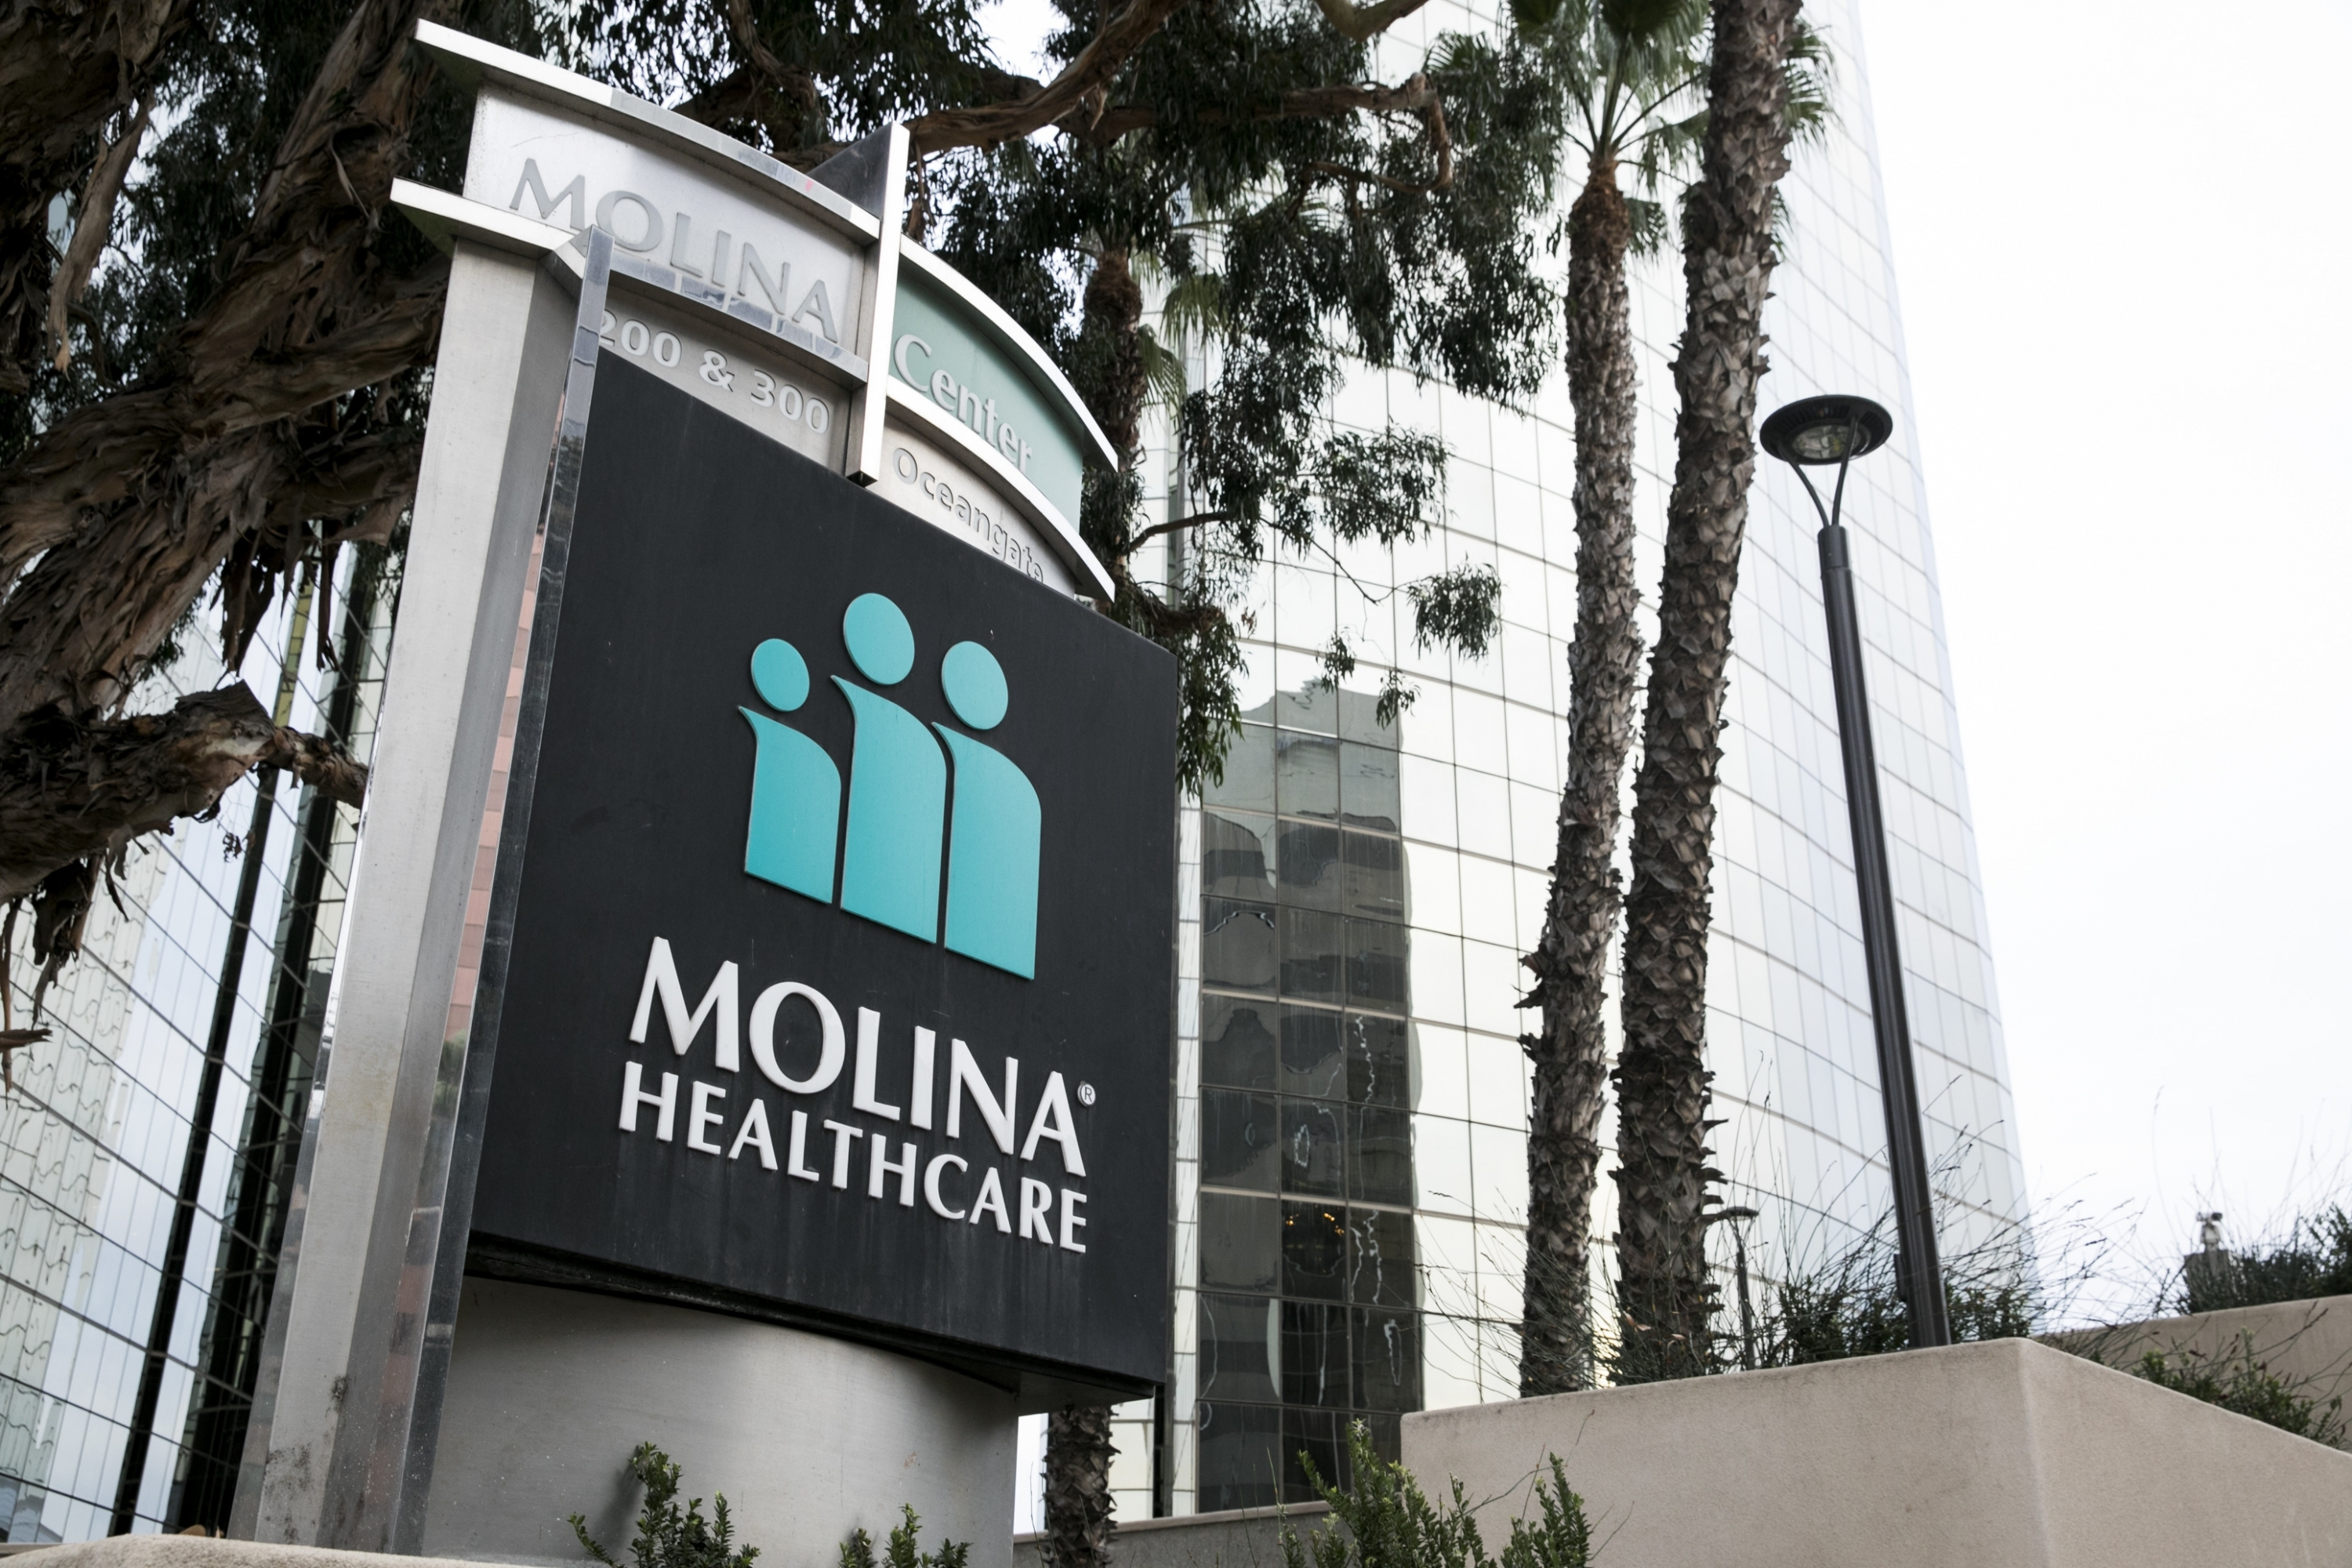 Best Medicaid Plan In Florida 2020 Molina secures Florida Medicaid contract after successful protest